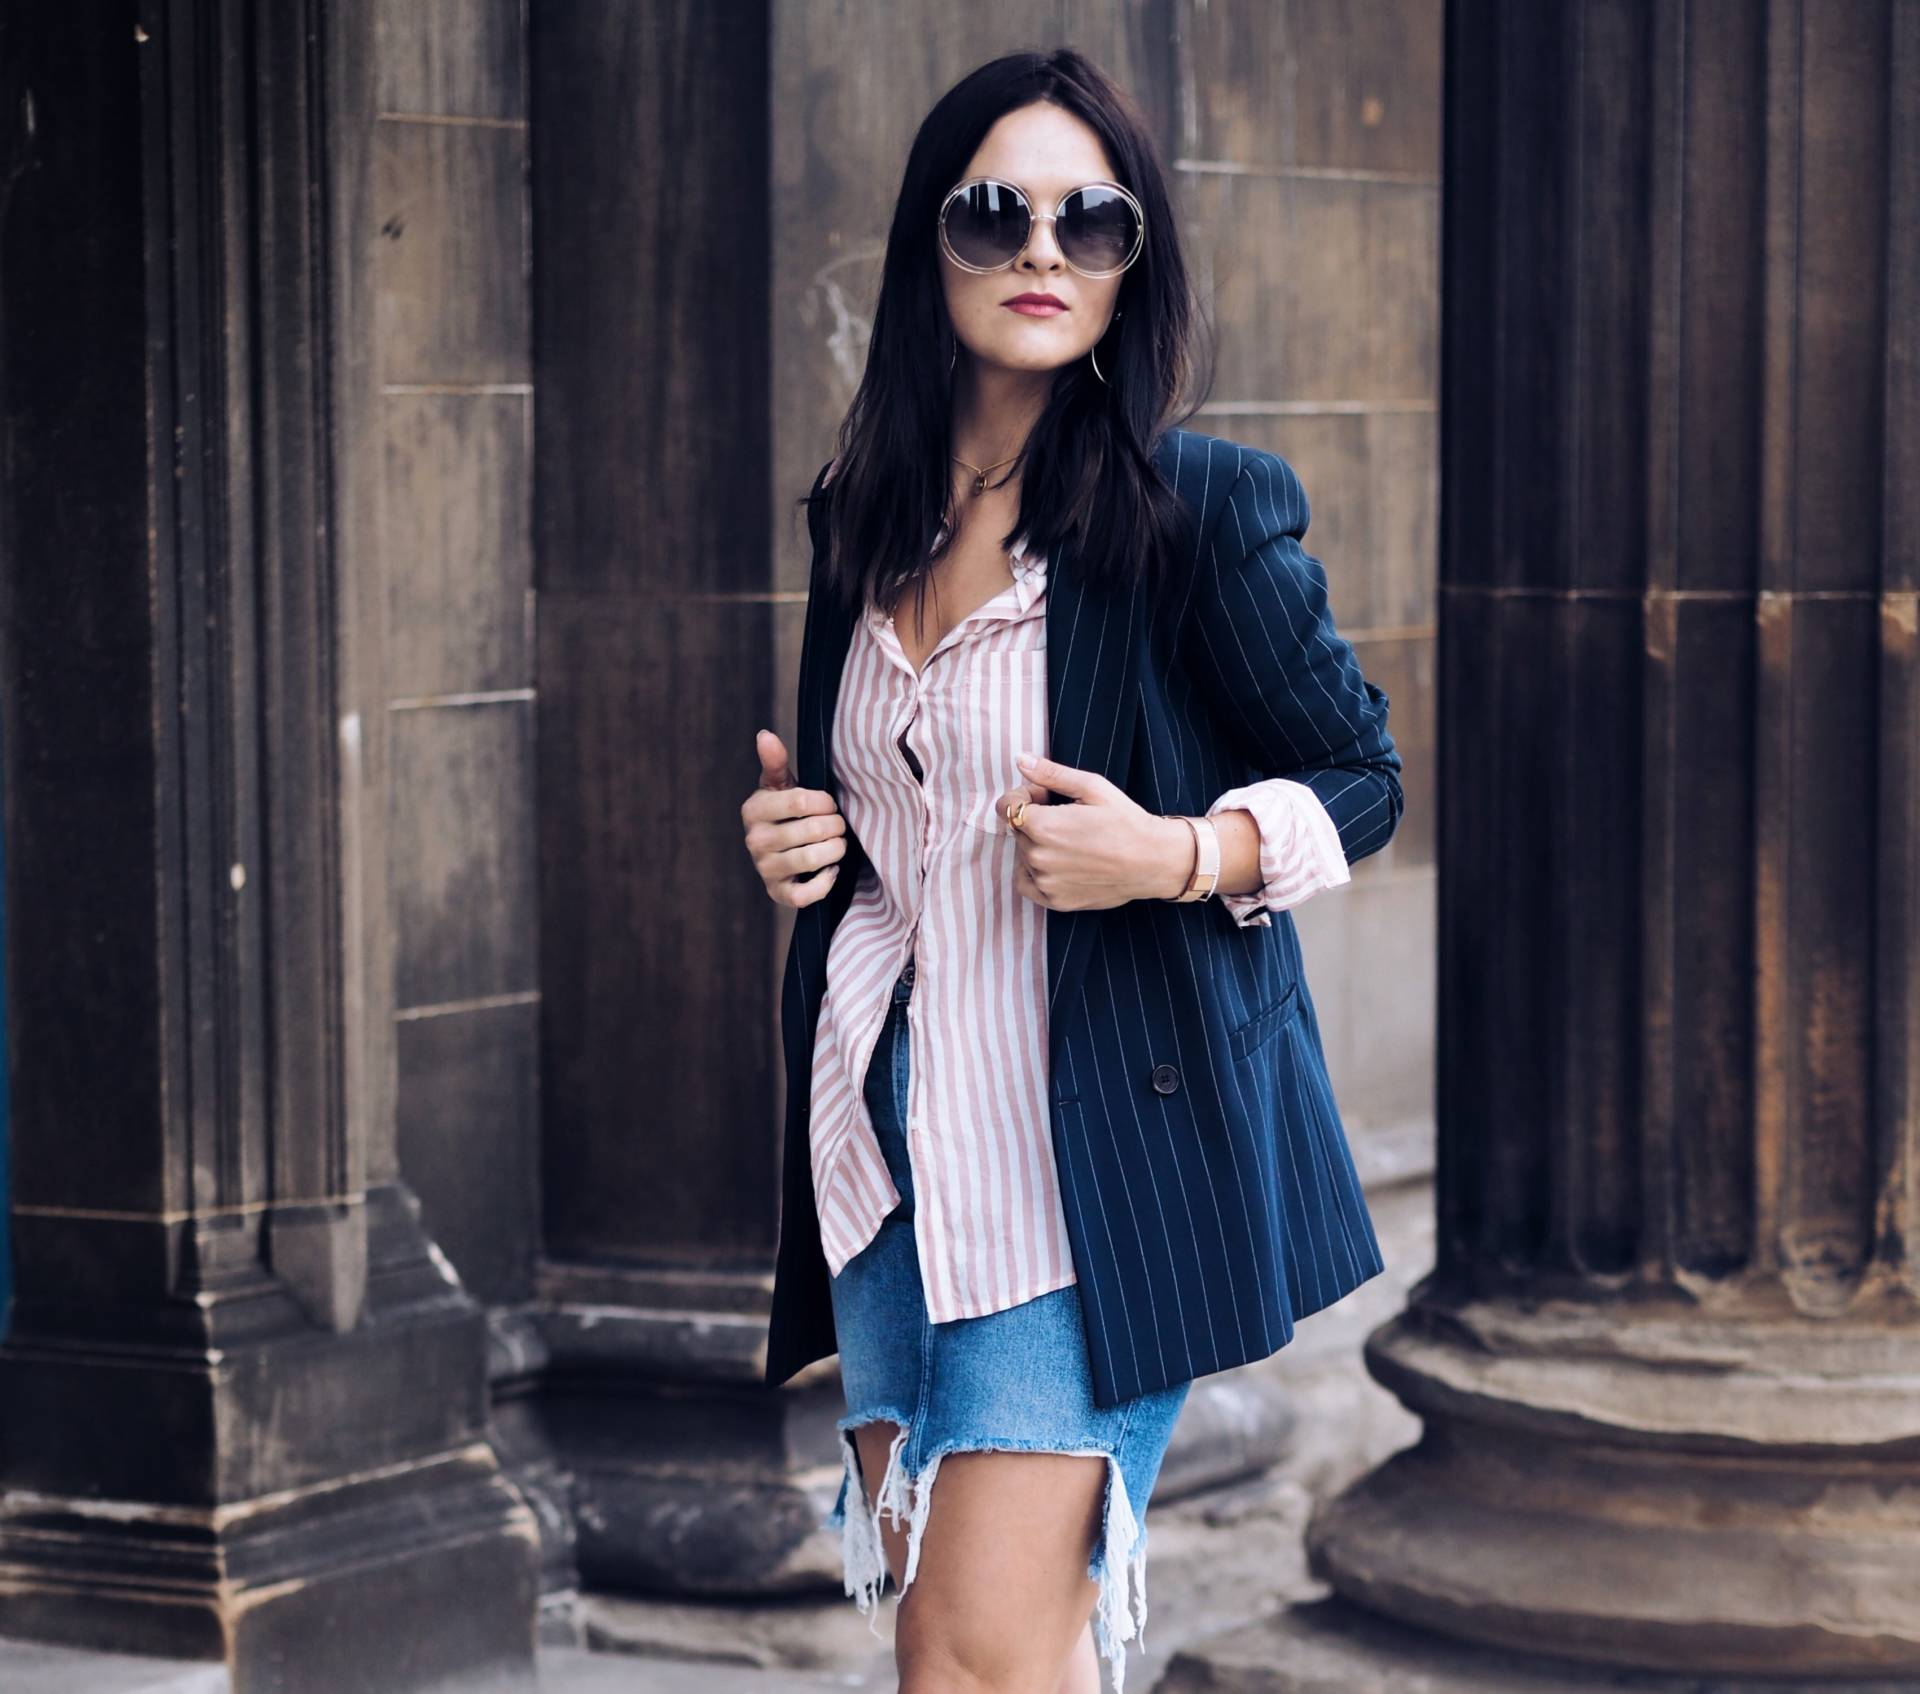 Atterley-GANNI-pin-stripe-blazer-styled-by-U.K.-Fashion-blogger-LAFOTKA